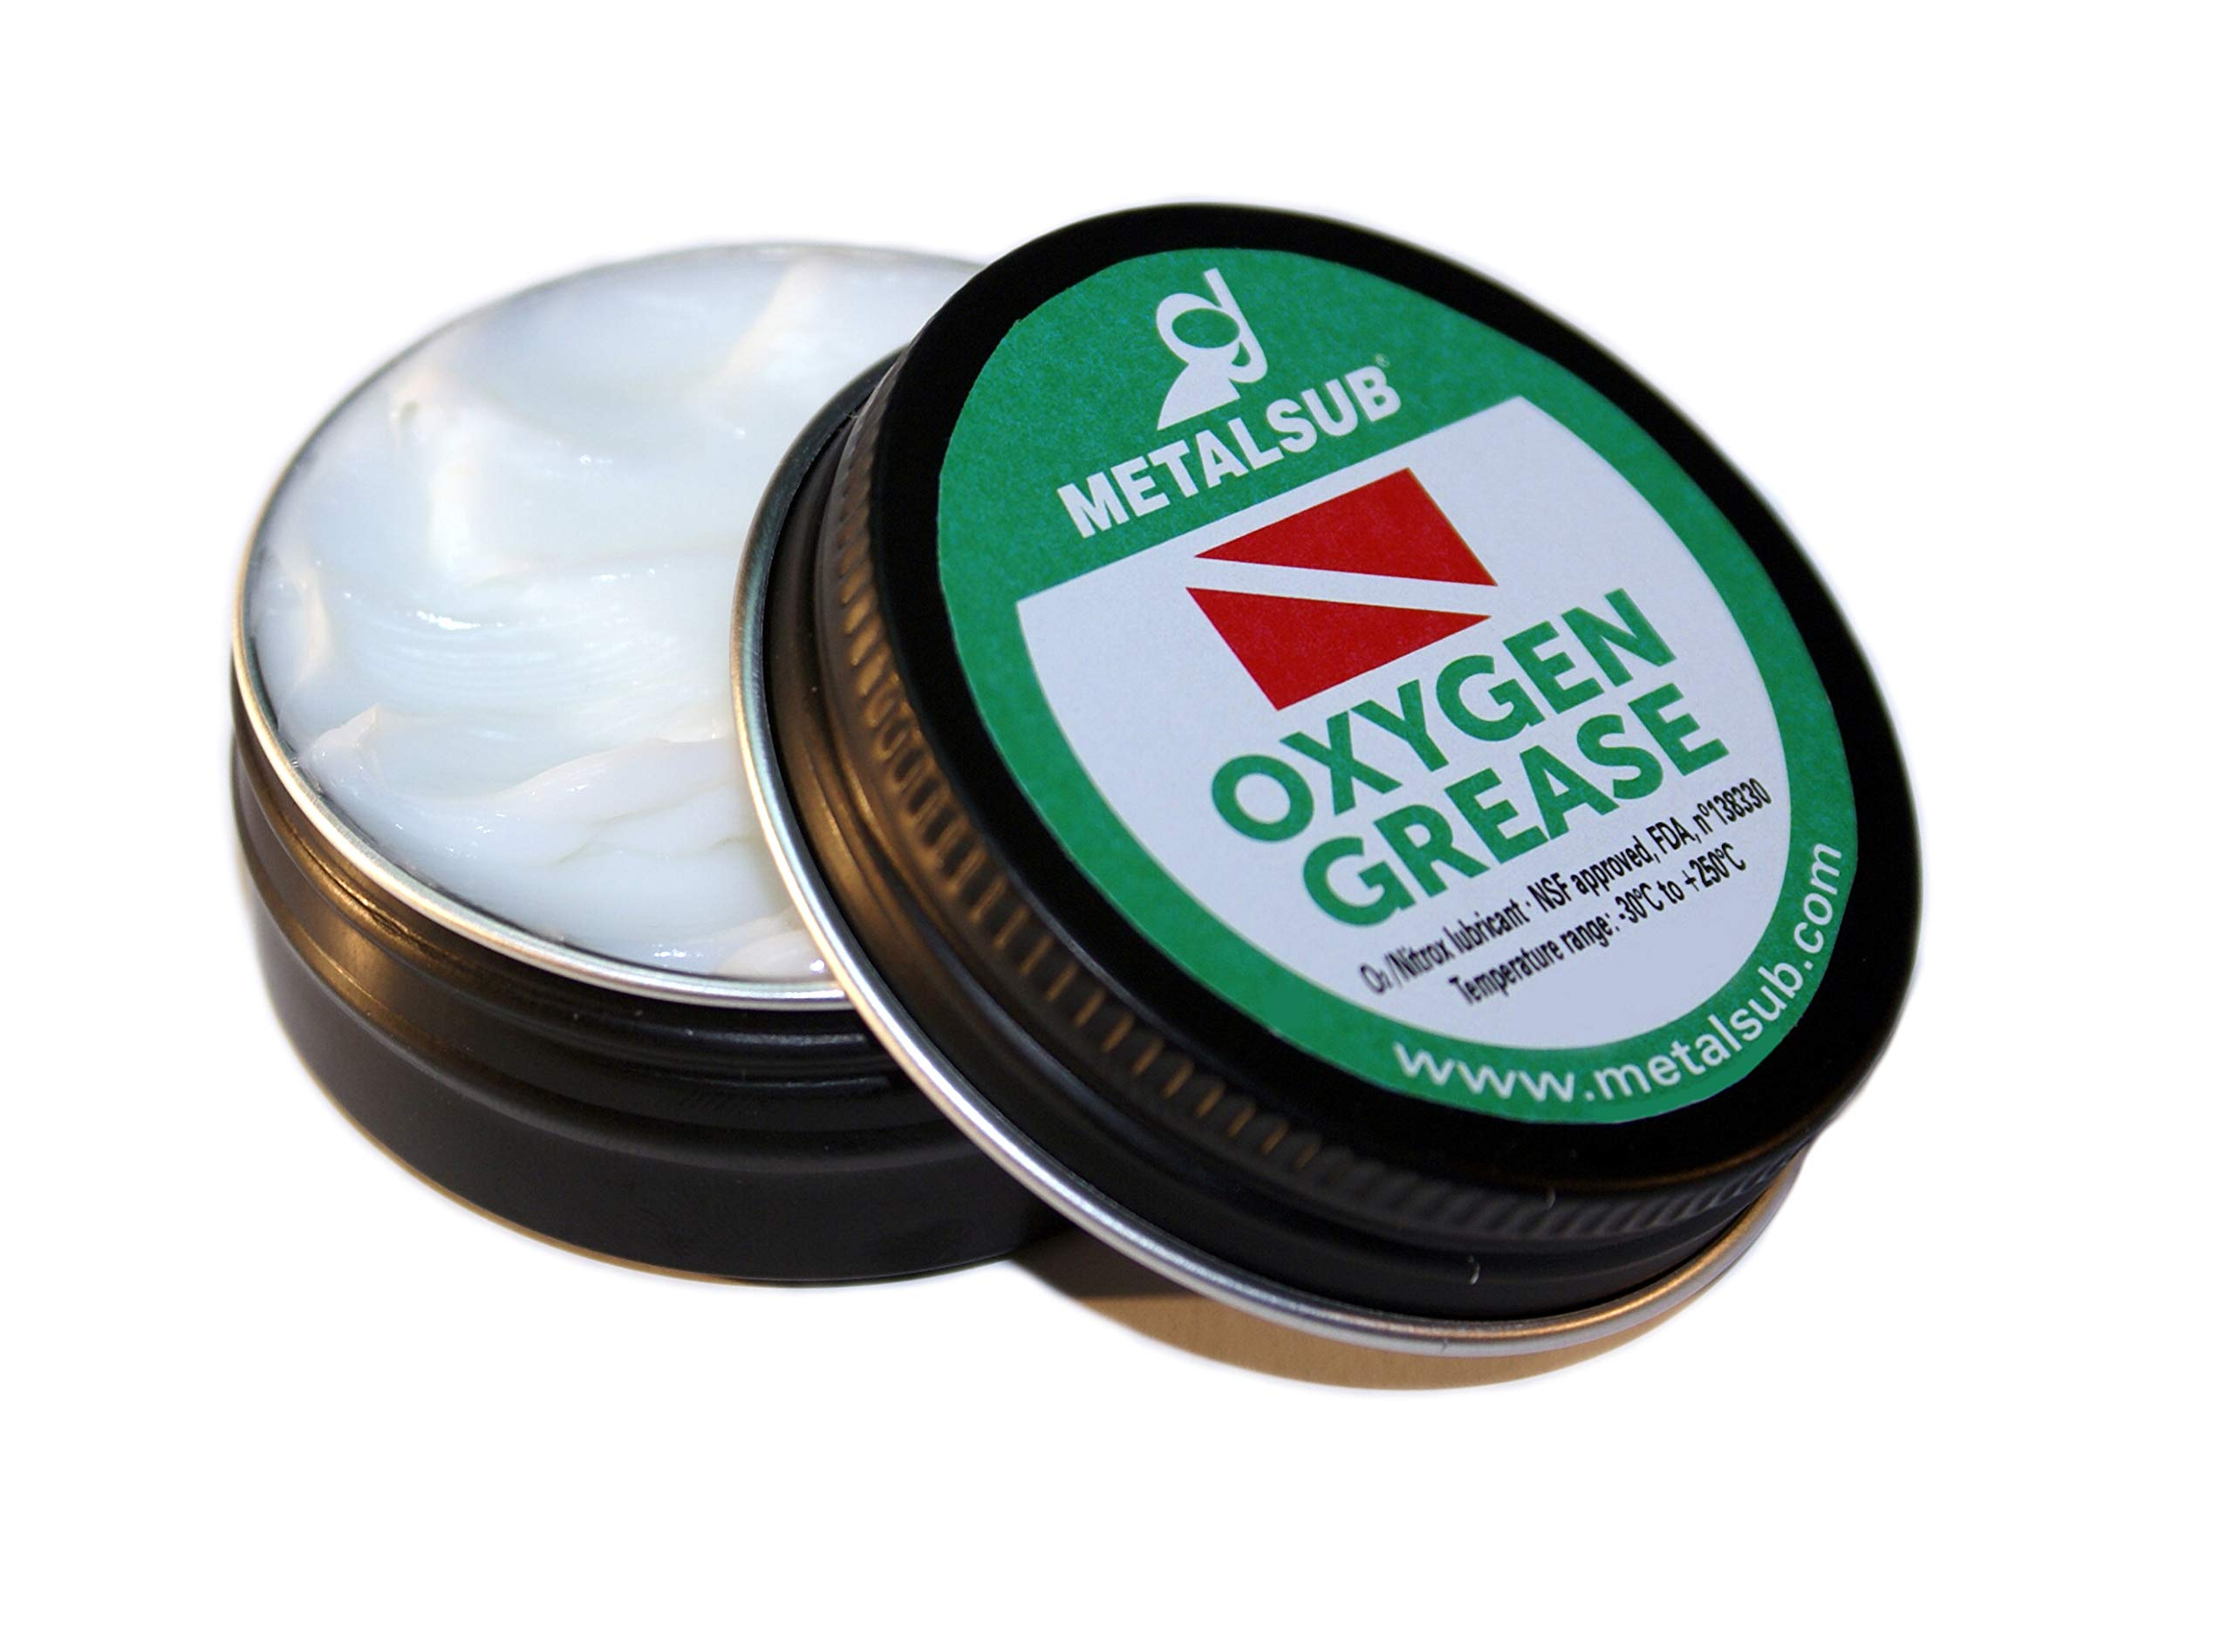 METALSUB Grease for Oxygen Applications, nitrox and rebreathers (1 oz / 30 gr)